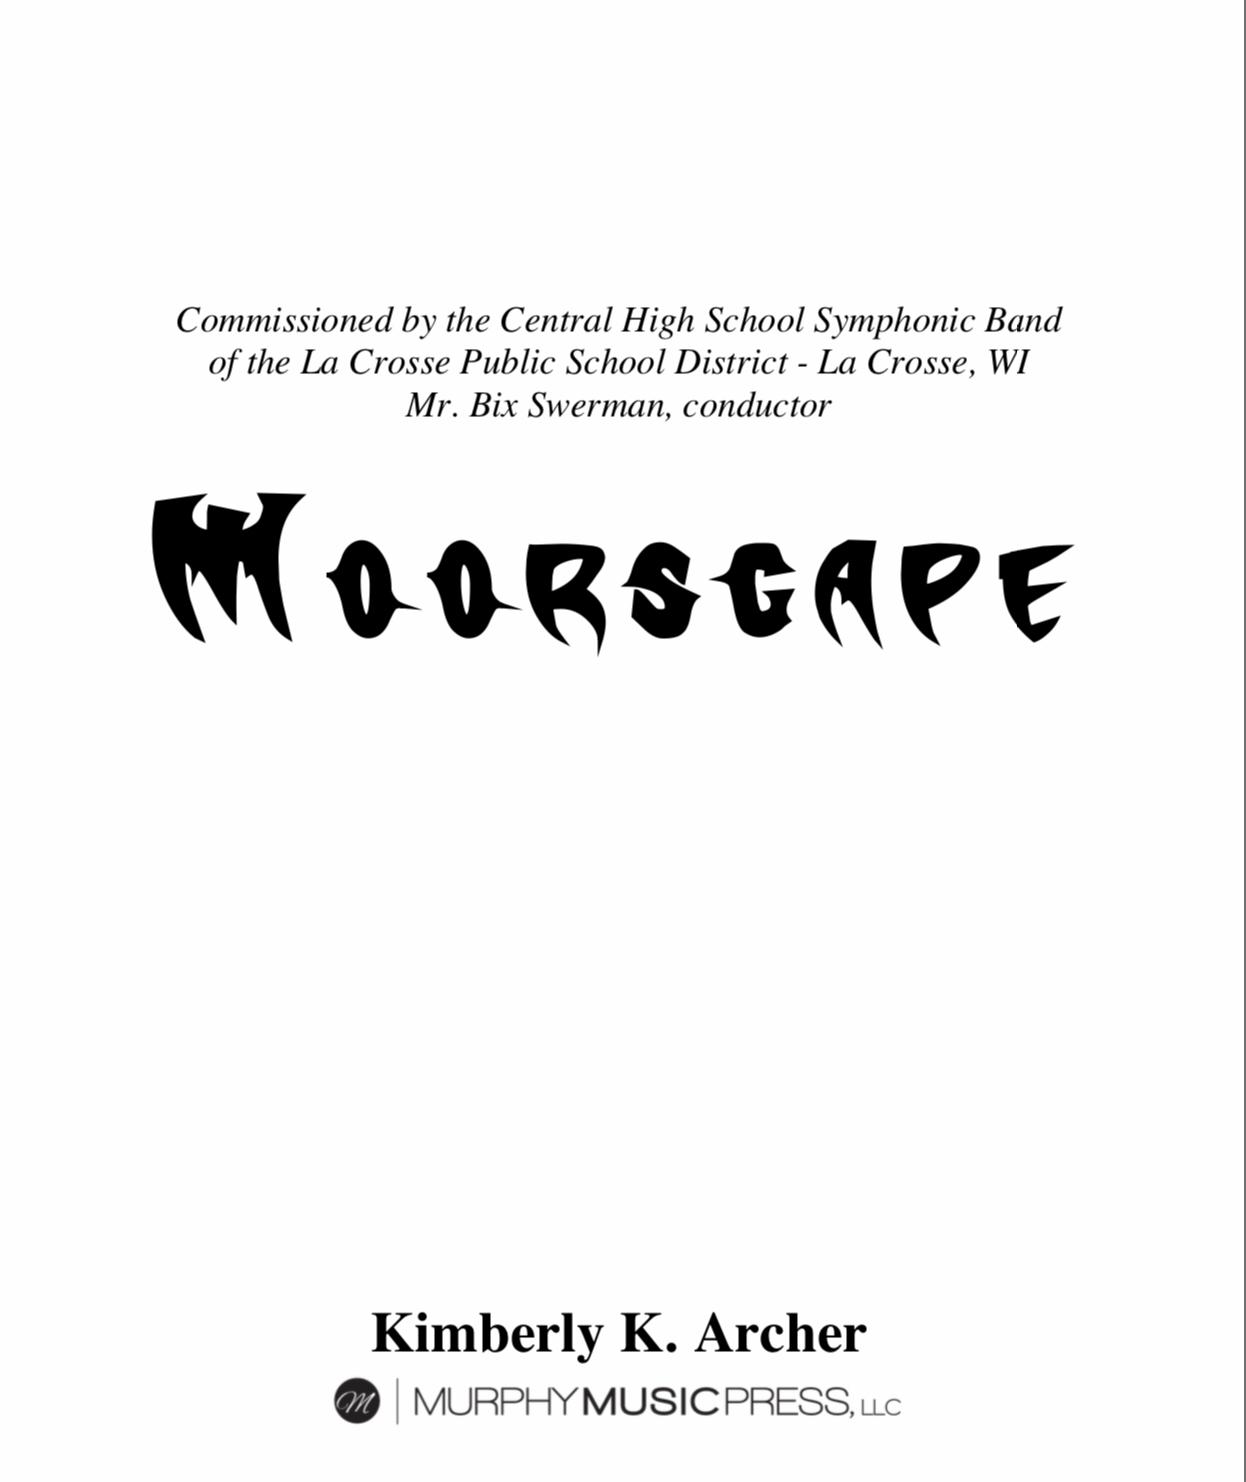 Moorscape by Kimberly Archer